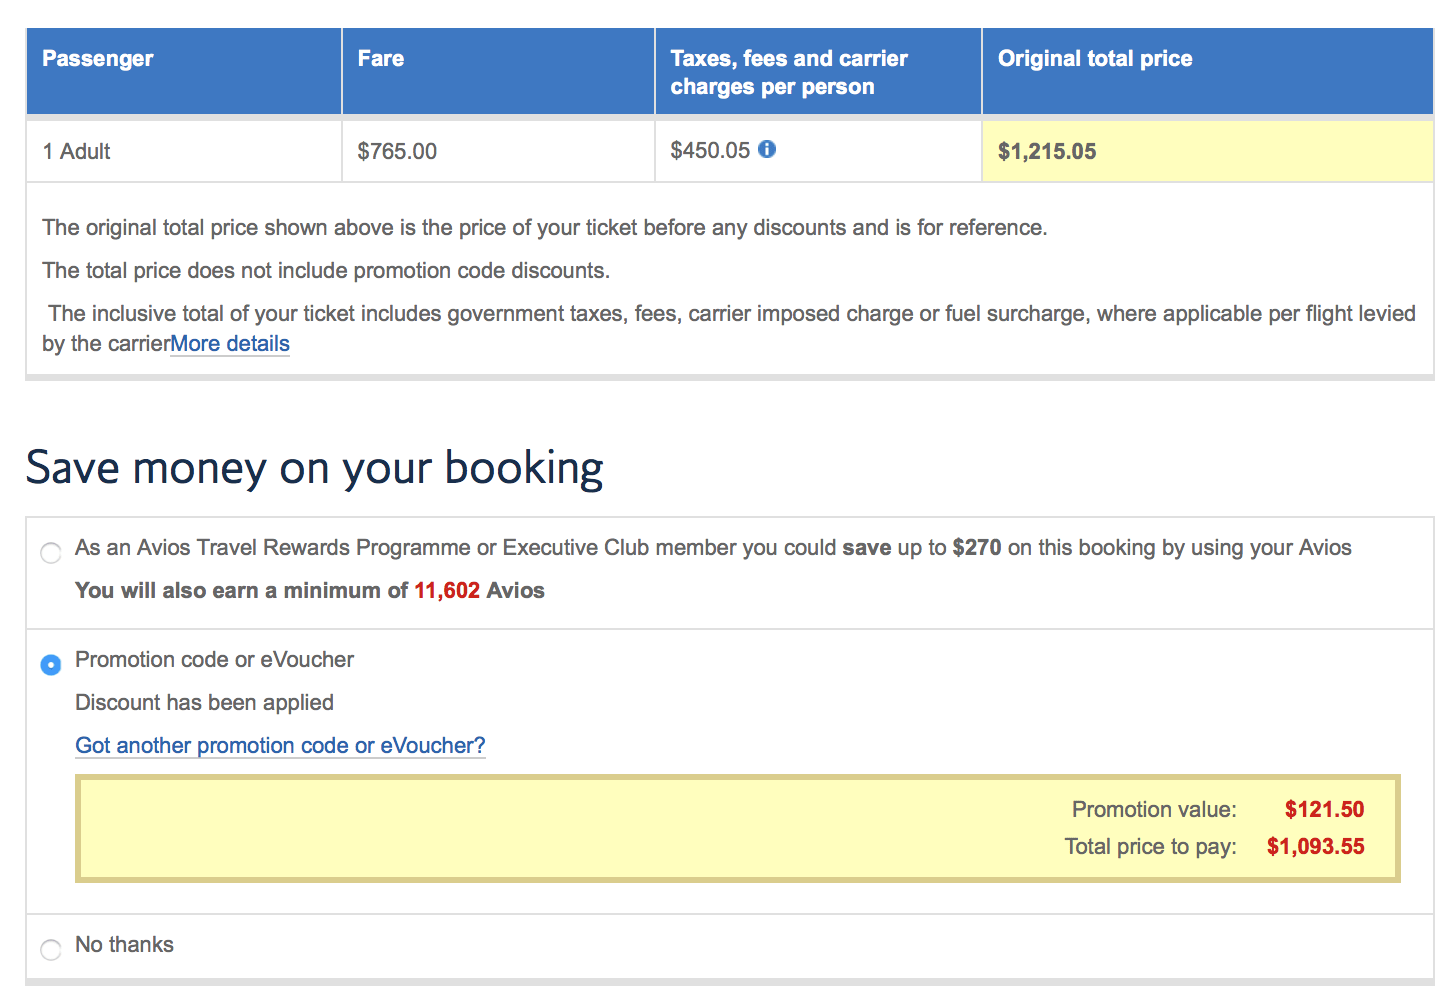 I made a mistake and forgot about the BA Visa offer for 10% off!